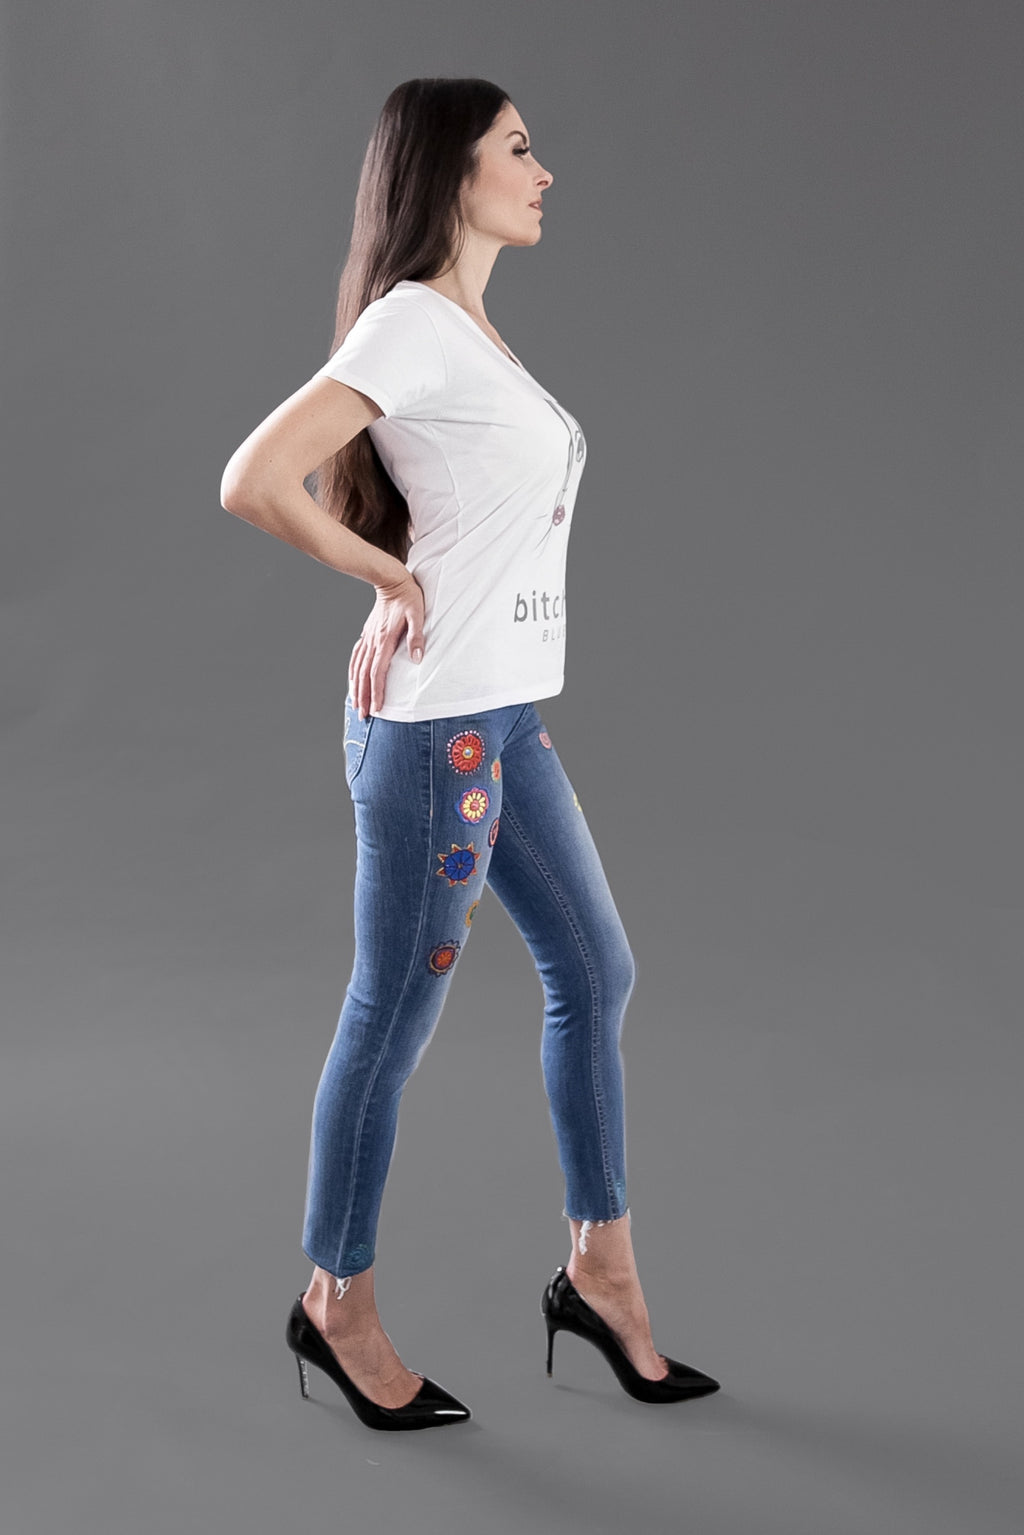 Saphira Summer Edition I - Skinny painted Jeans